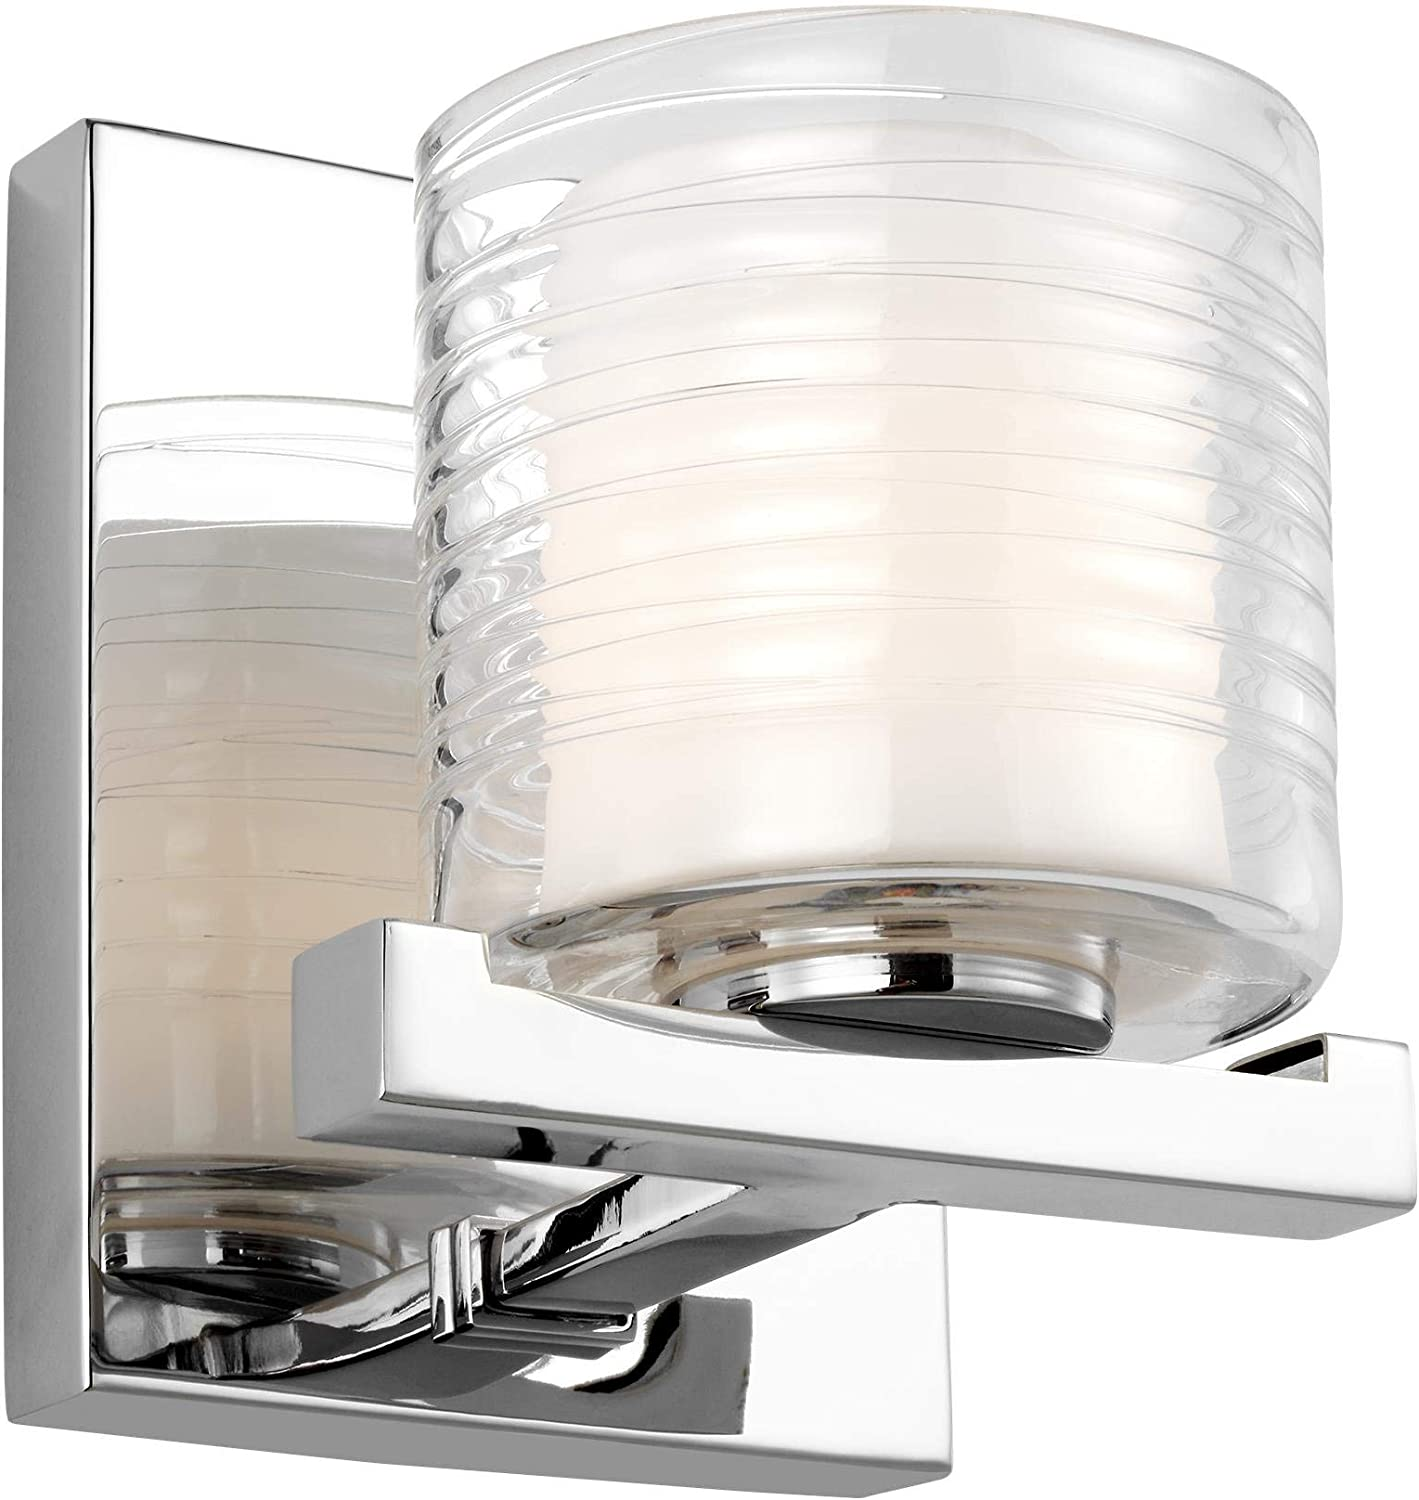 Feiss VS24201CH-L1 Volo LED Glass Wall Sconce Lighting, Chrome, 1-Light 6 W x 7 H